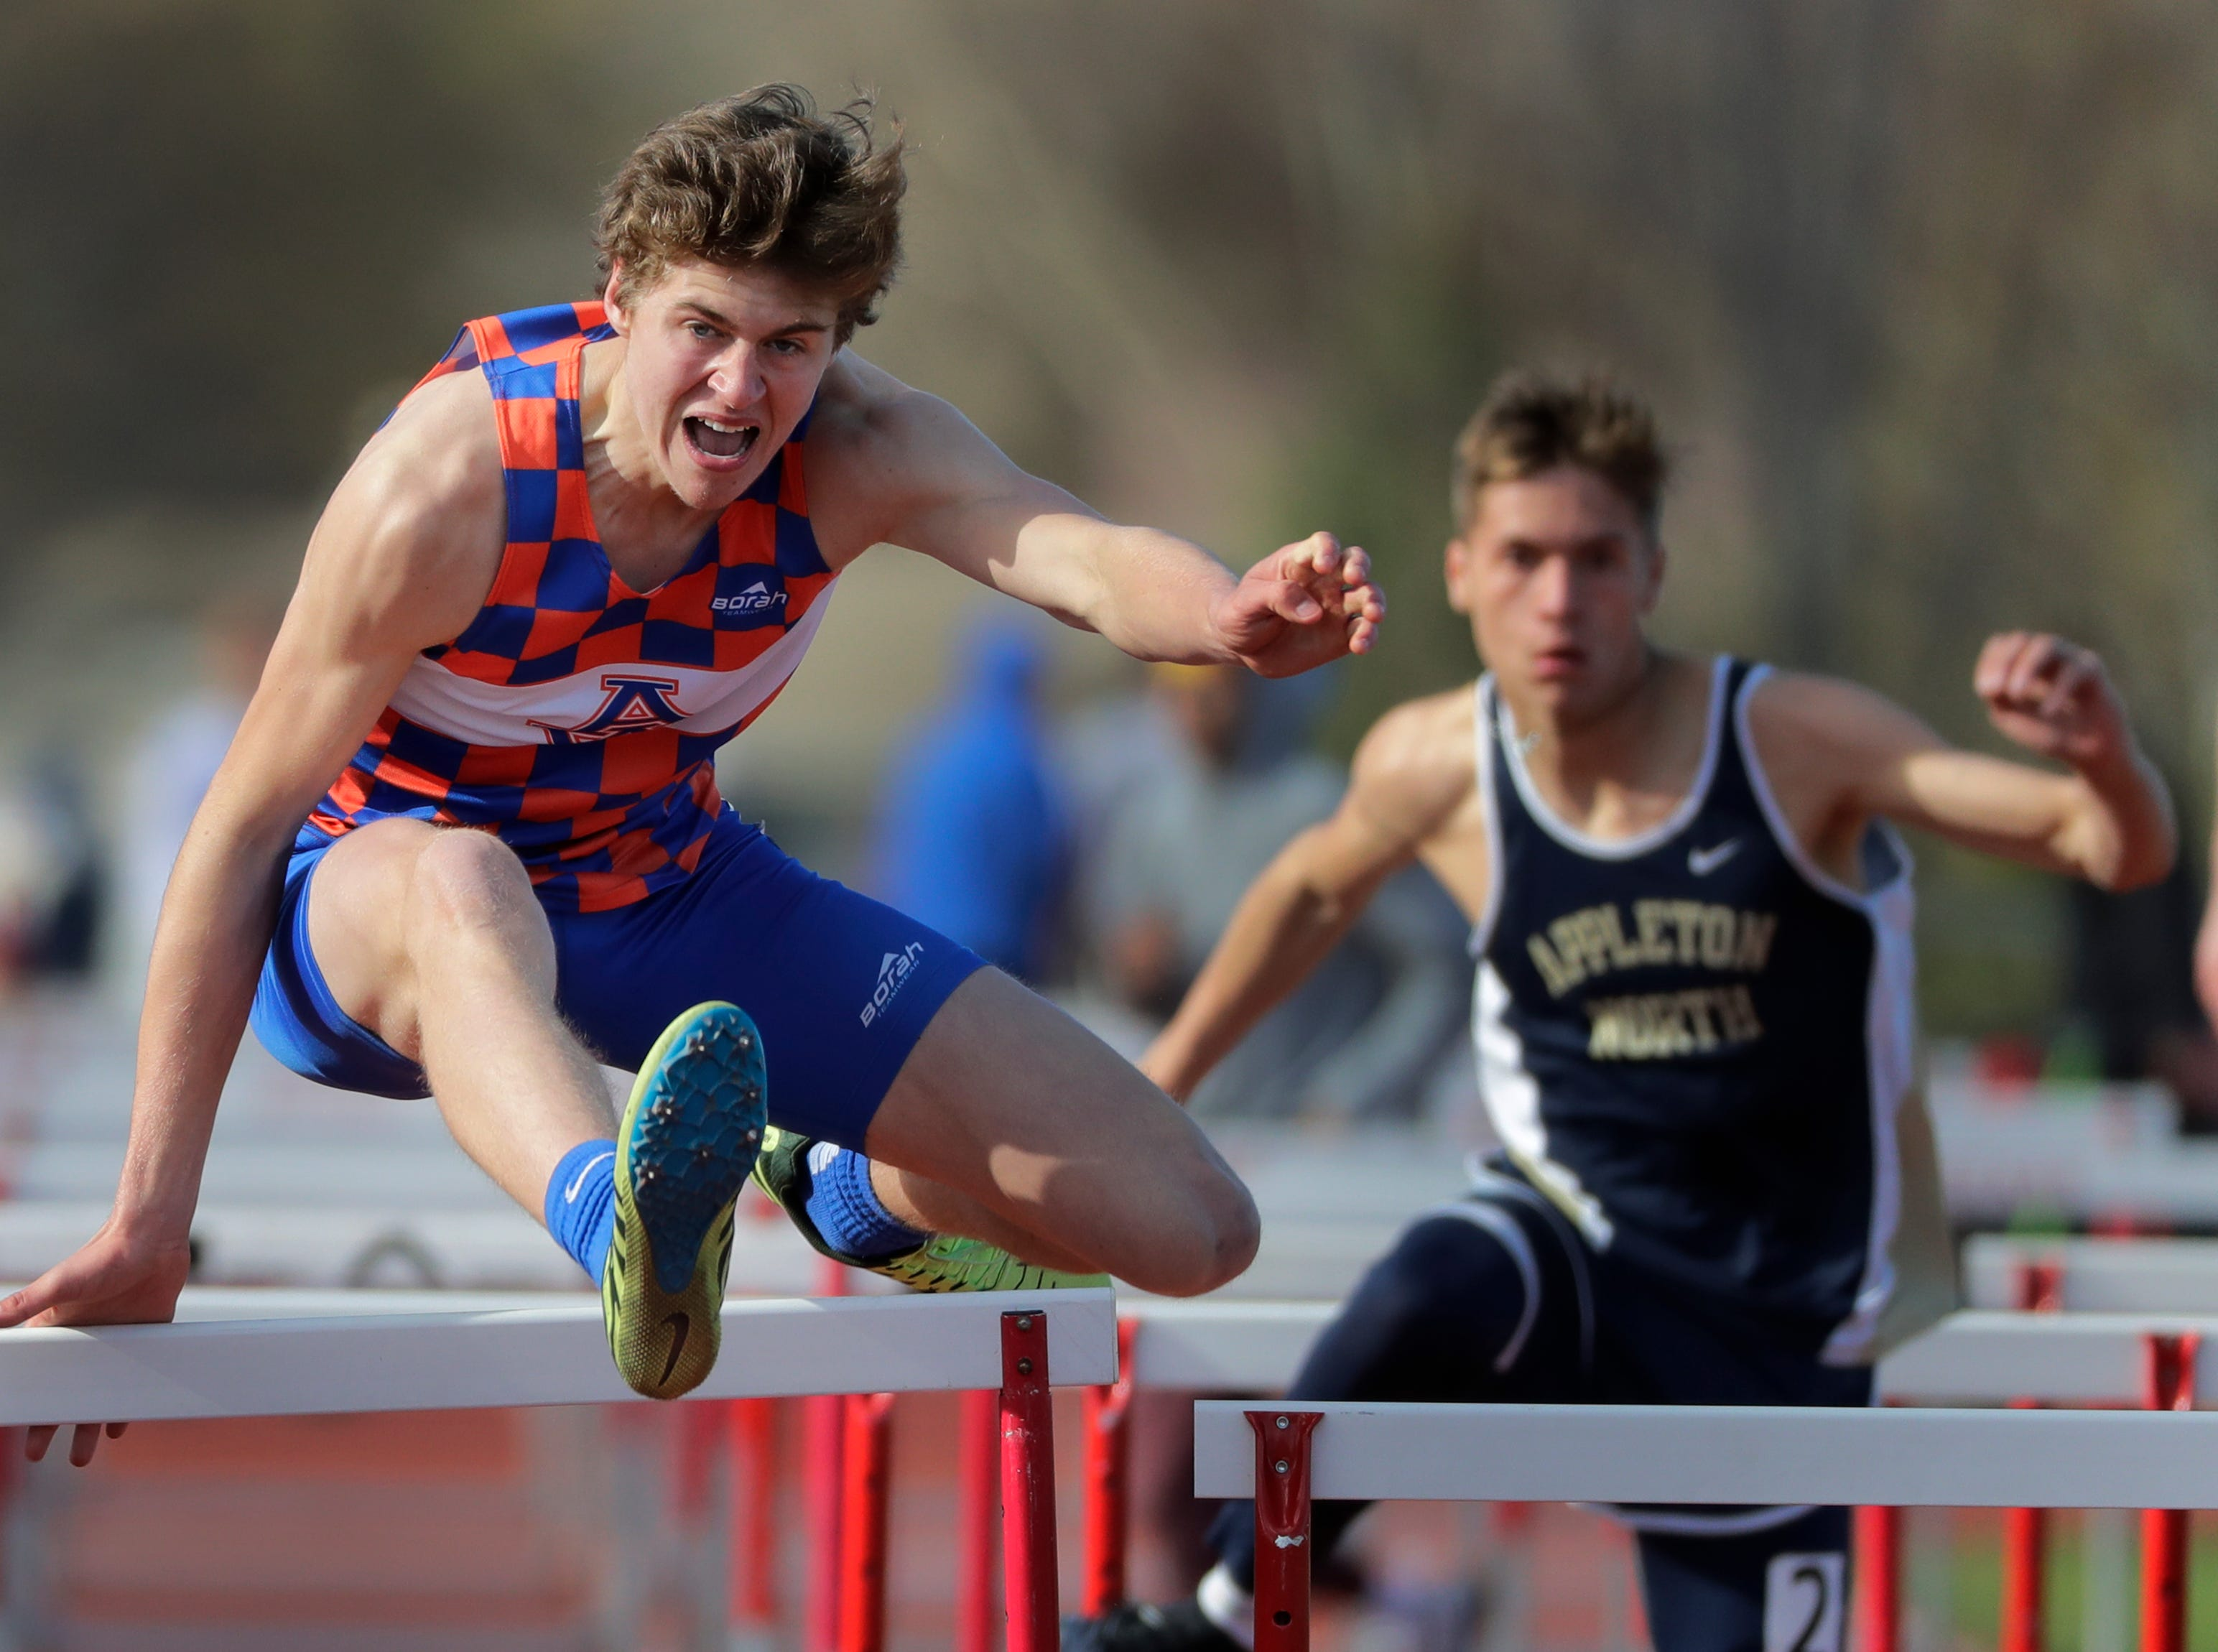 Appleton West High School's Spencer Steffen, left, competes in the 110-meter high hurdles against Appleton North High School's David Neitzke-Pizarro during the Neenah co-ed invitational track and field meet Friday, April 26, 2019, at Neenah High School in Neenah, Wis. 